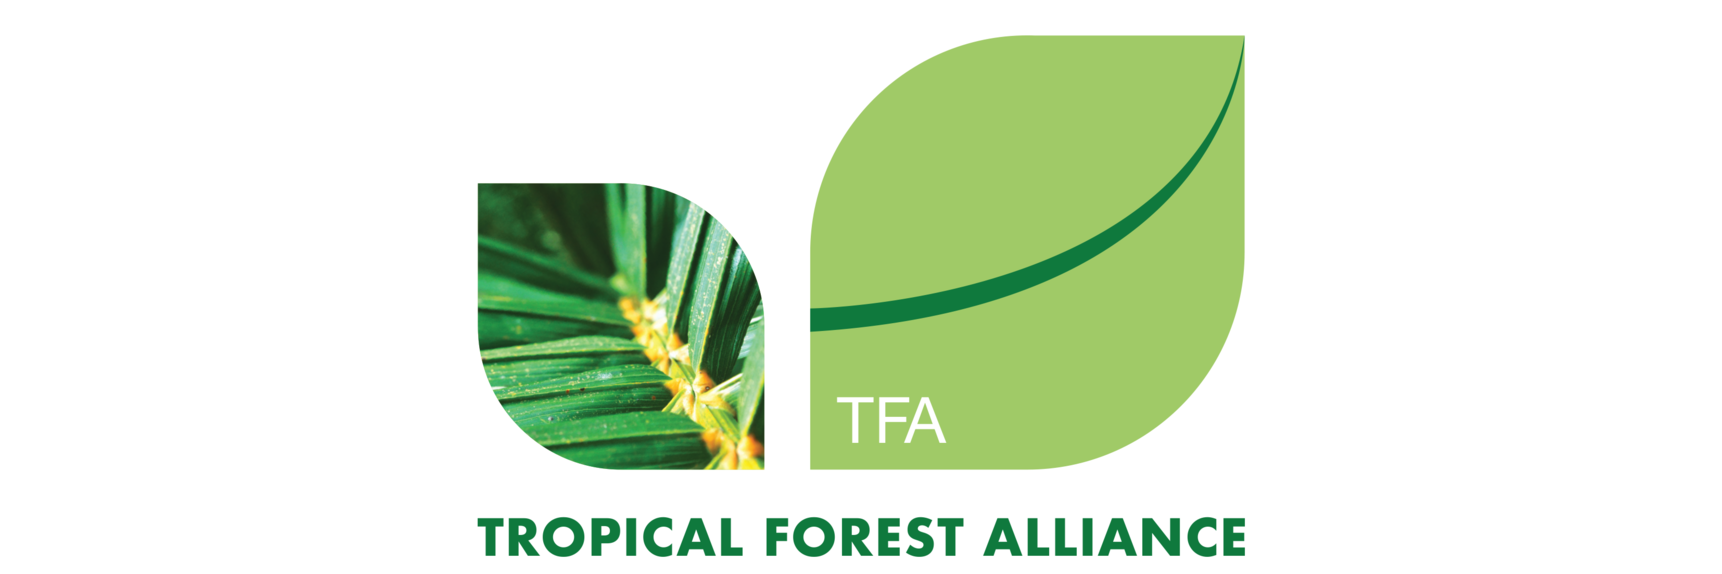 Tropical Forest Alliance